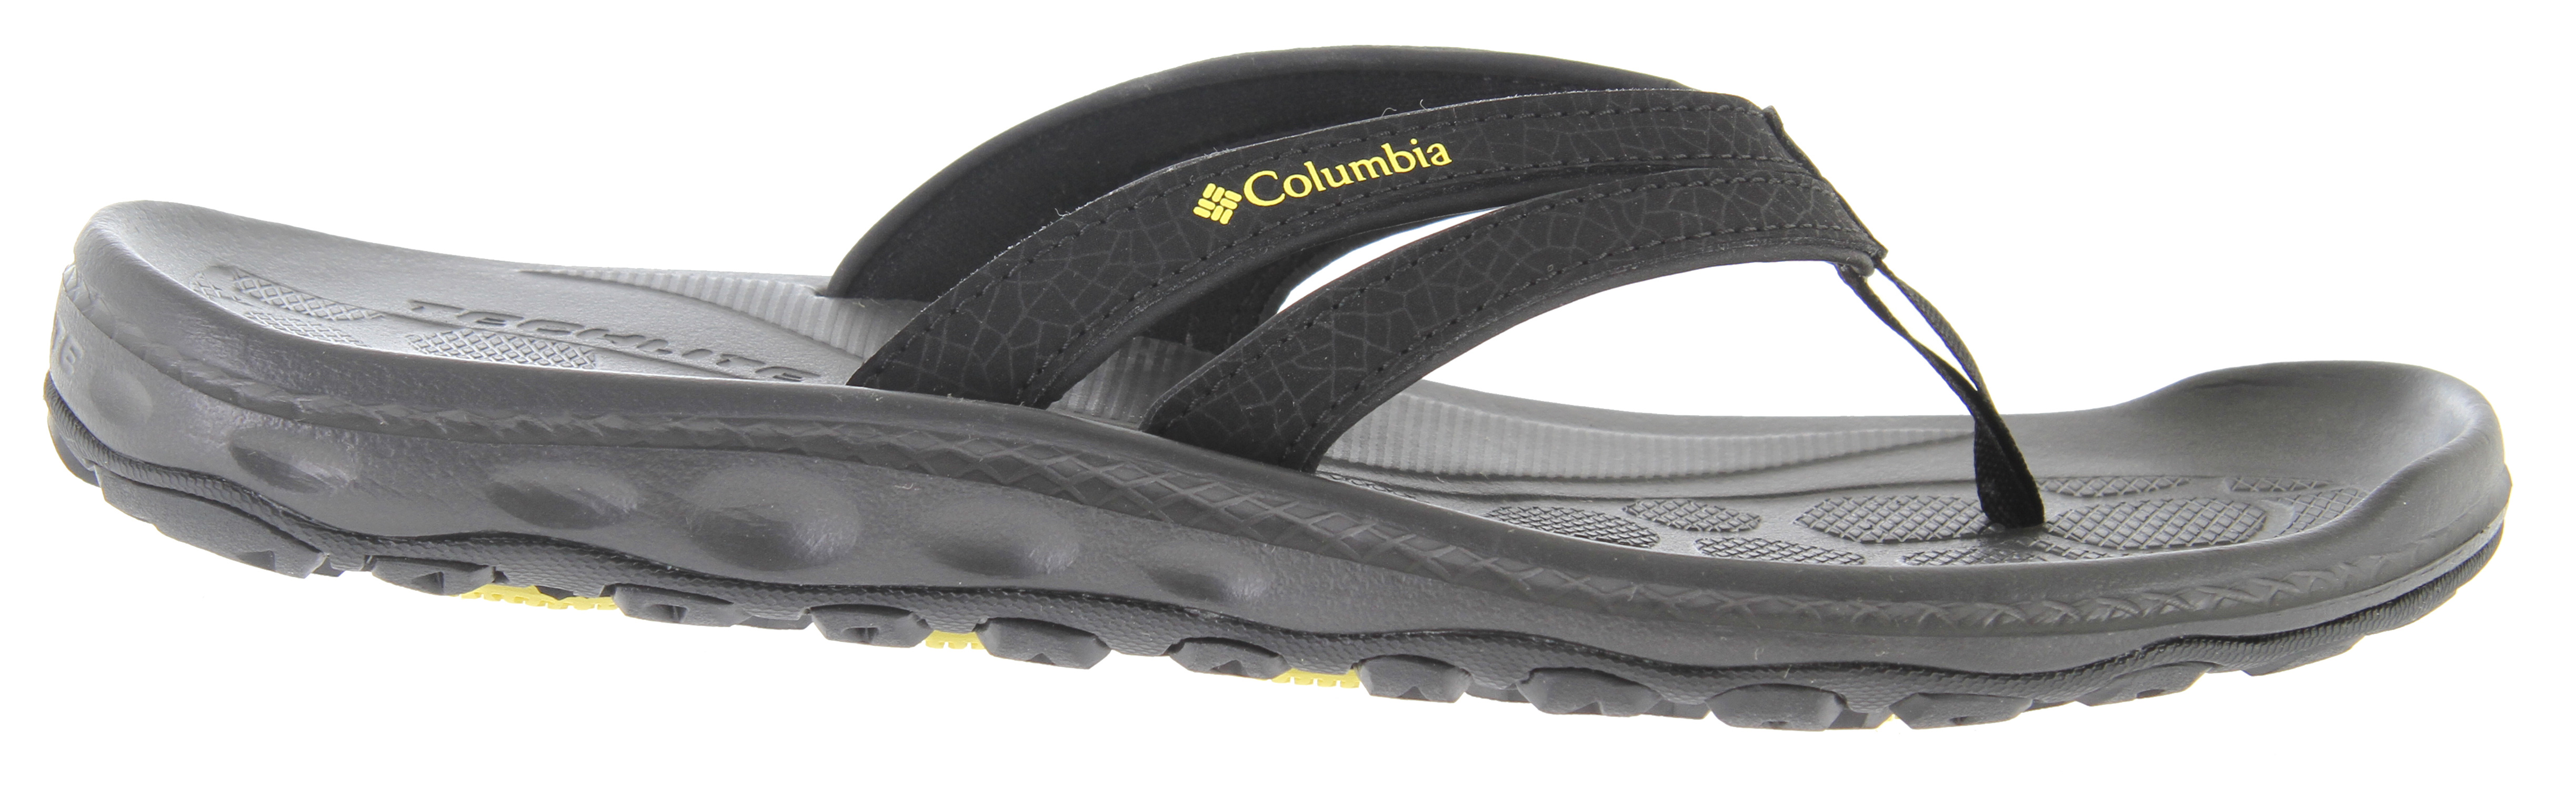 "Surf A comfortable sandal, the Techsun Flip sandal is designed with wet and dry traction in mind.Key Features of the Columbia Techsun Flip Sandals: A lightweight synthetic leather strap with dynamic movement for a comfortable feel Full length Techlite midsole with textured footbed for ""anti-slip"" underfoot Full length Omni-Grip traction with sticky rubber compound for traction in wet conditions; dual lug design for traction on land, rocks, and in and around the water. - $22.95"